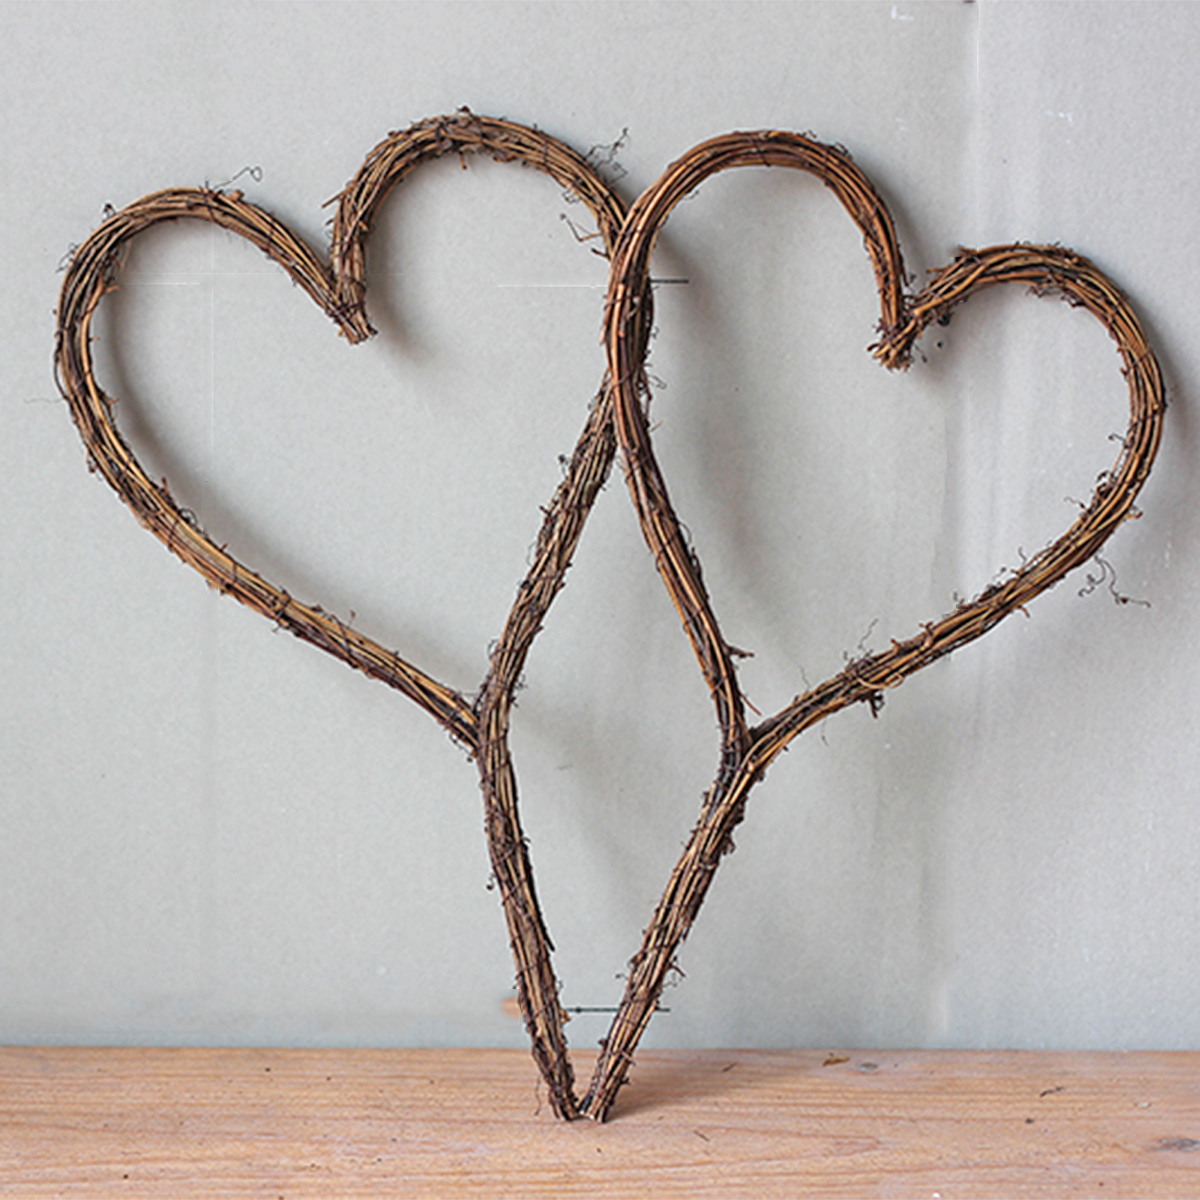 Rattan braided branches heart-shaped heart-shaped garland decoration retro DIY flower arrangement wall hanging living room window decoration materials